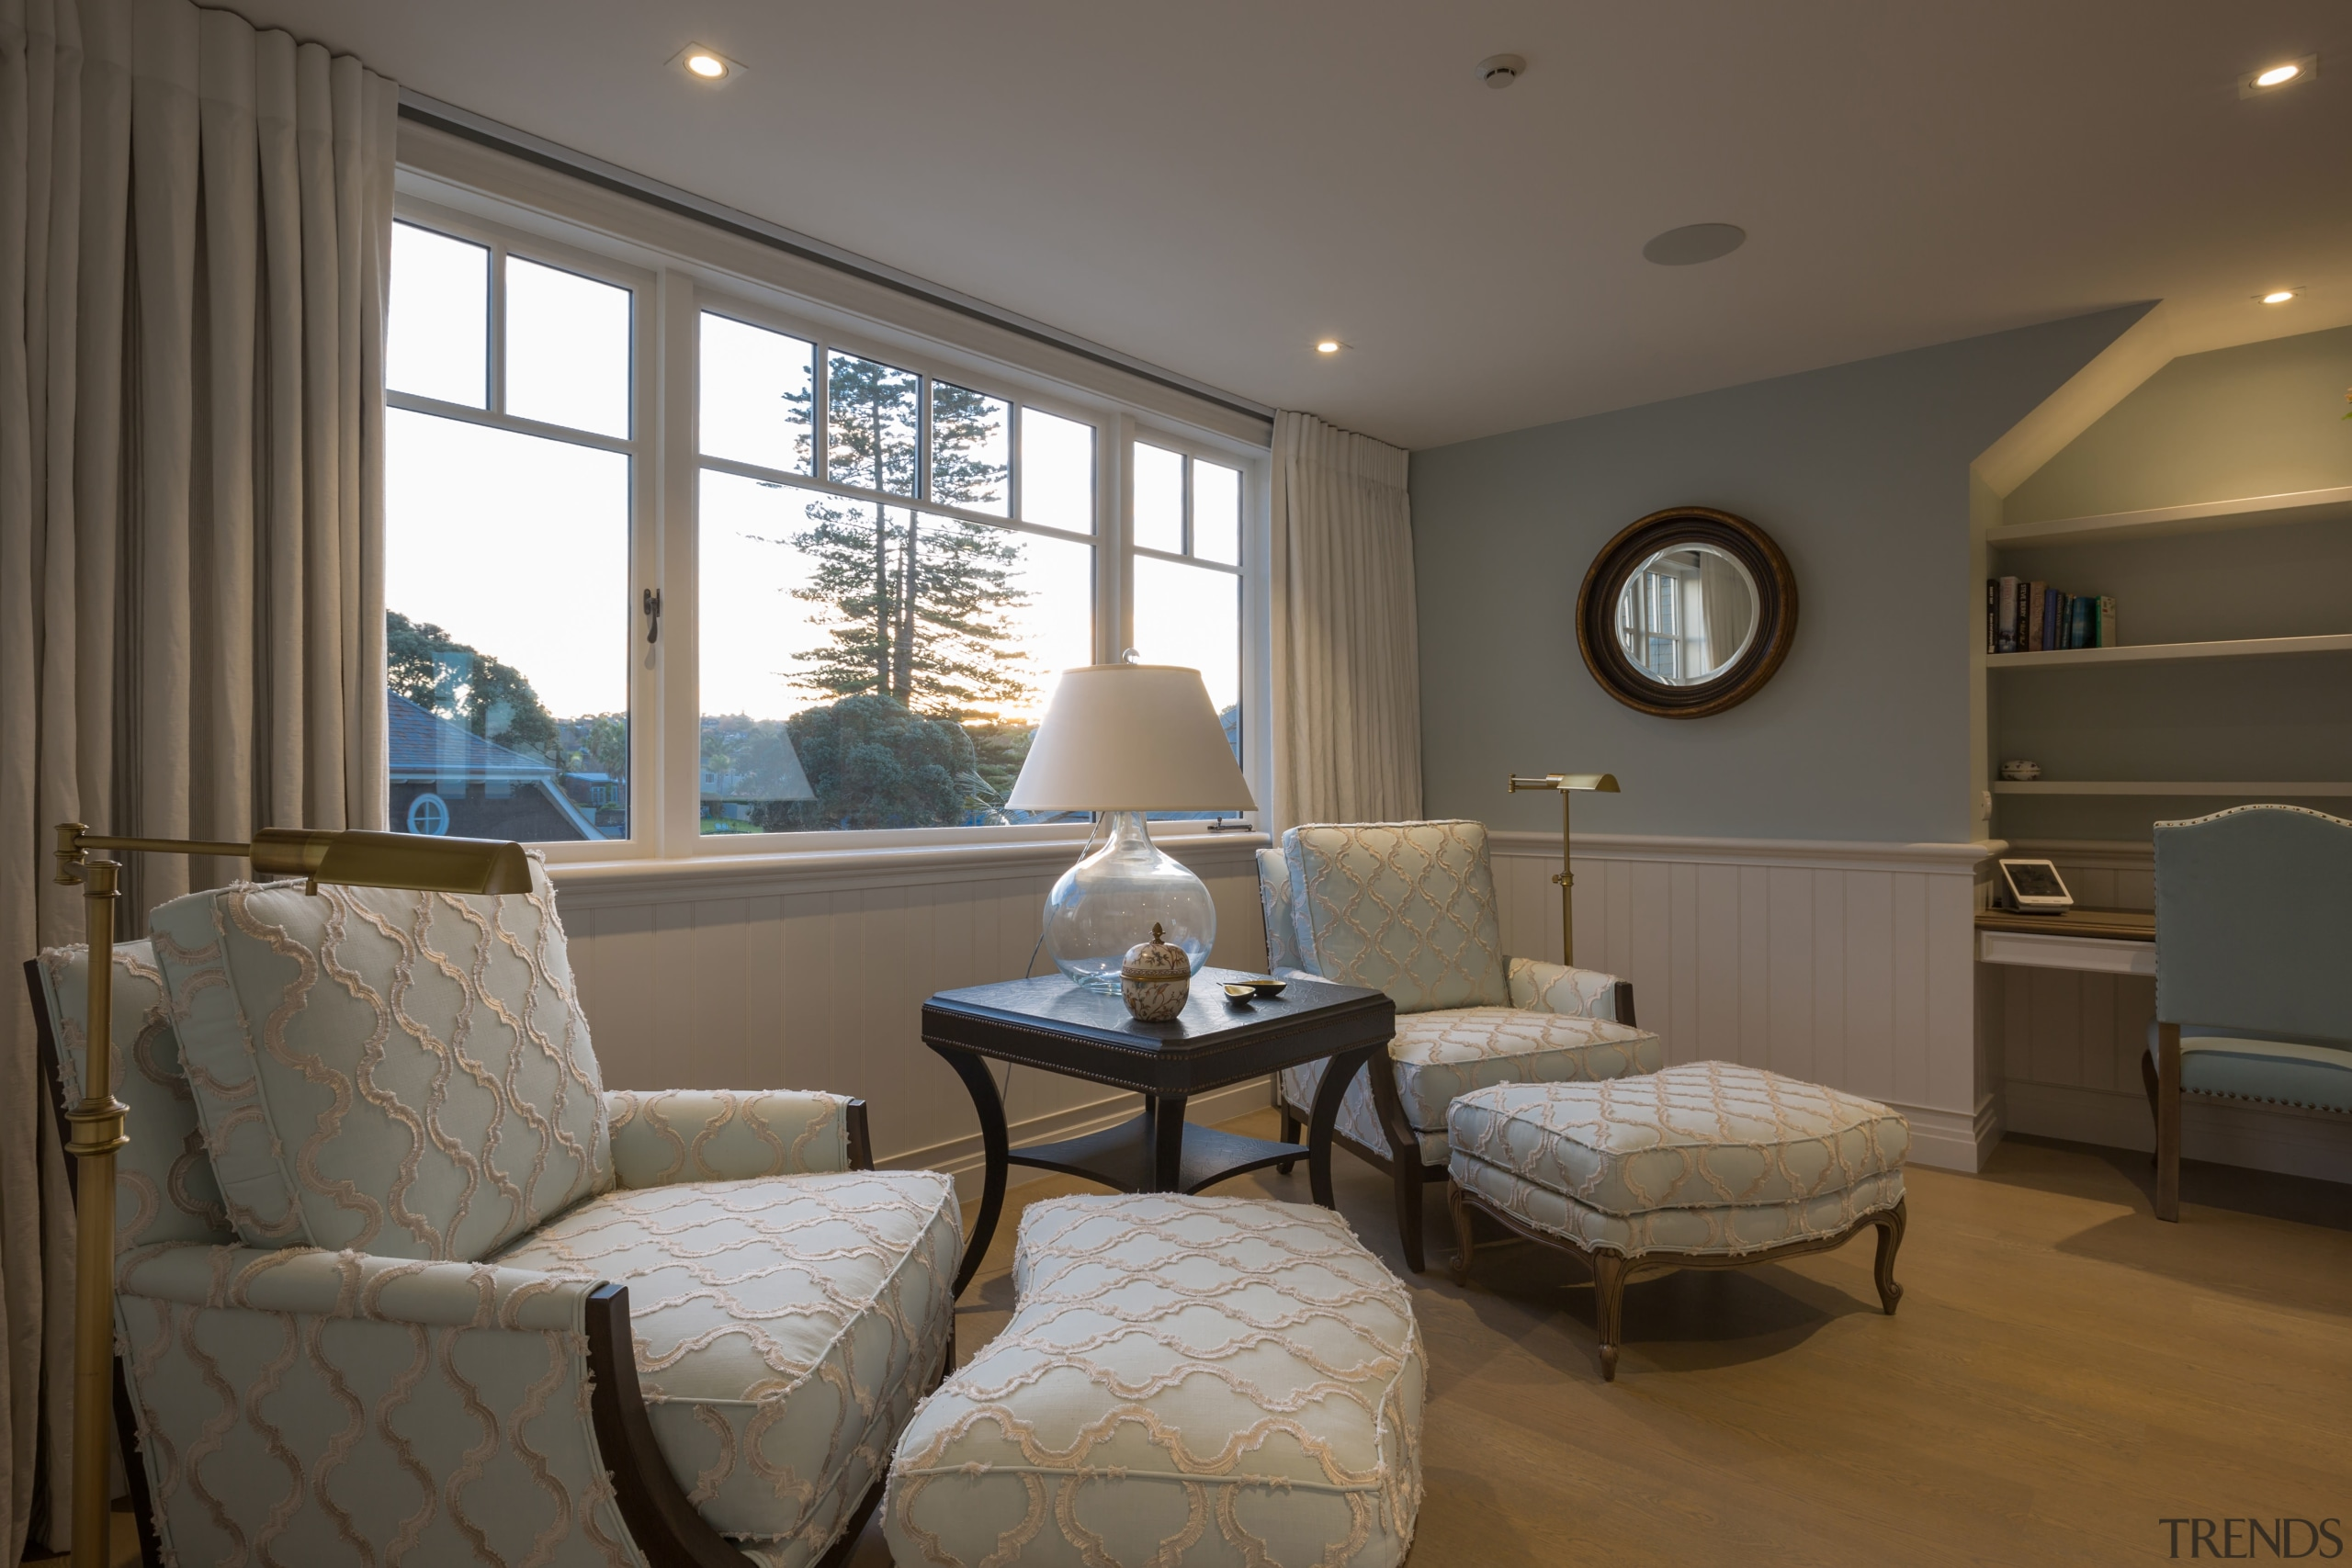 This day room forms part of a master ceiling, floor, home, interior design, living room, real estate, room, window, gray